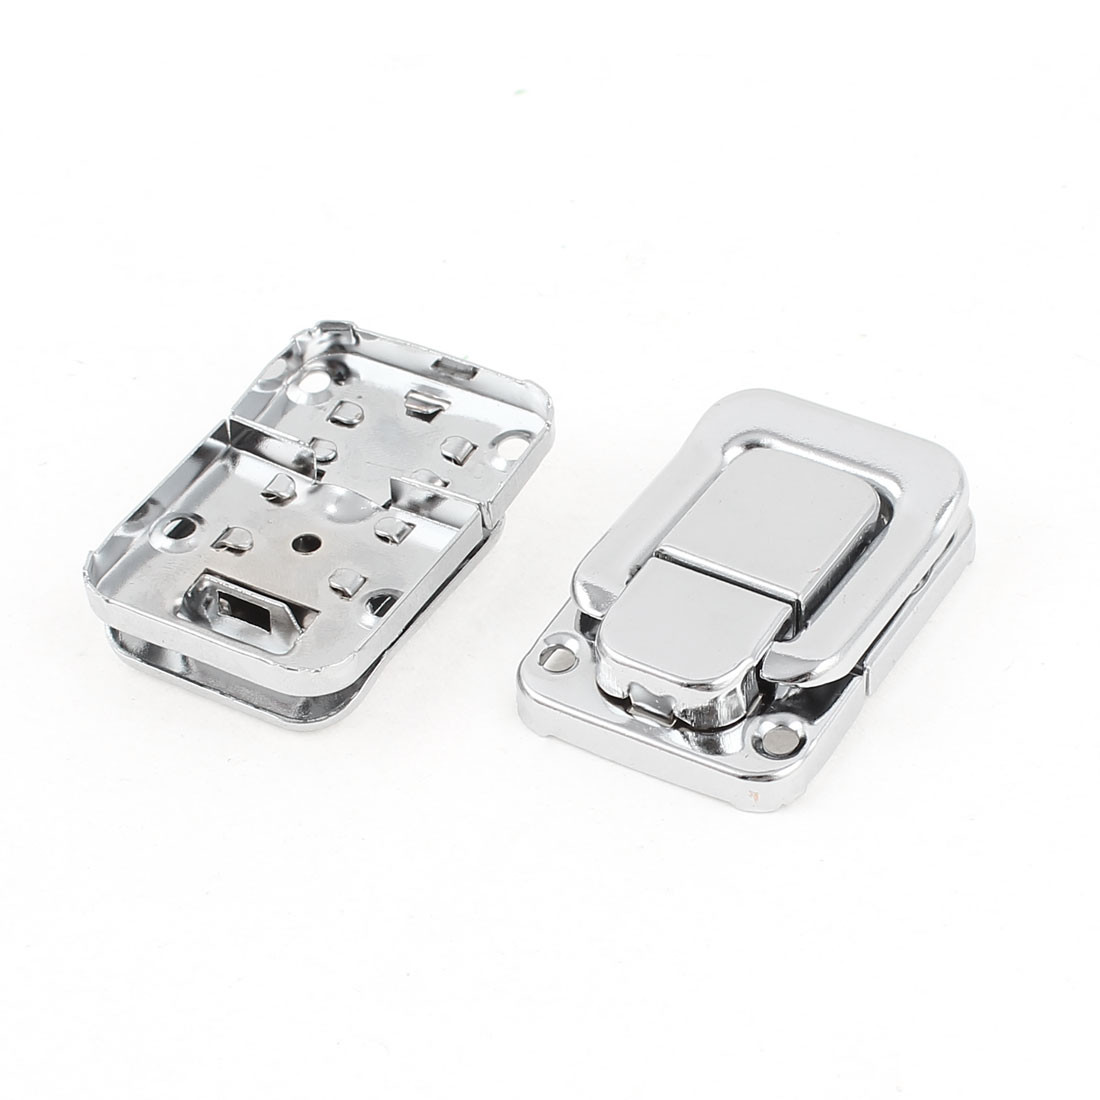 2 Pcs Metal Wardrobe Box Case Latch Hasp Silver Tone 45mm Long